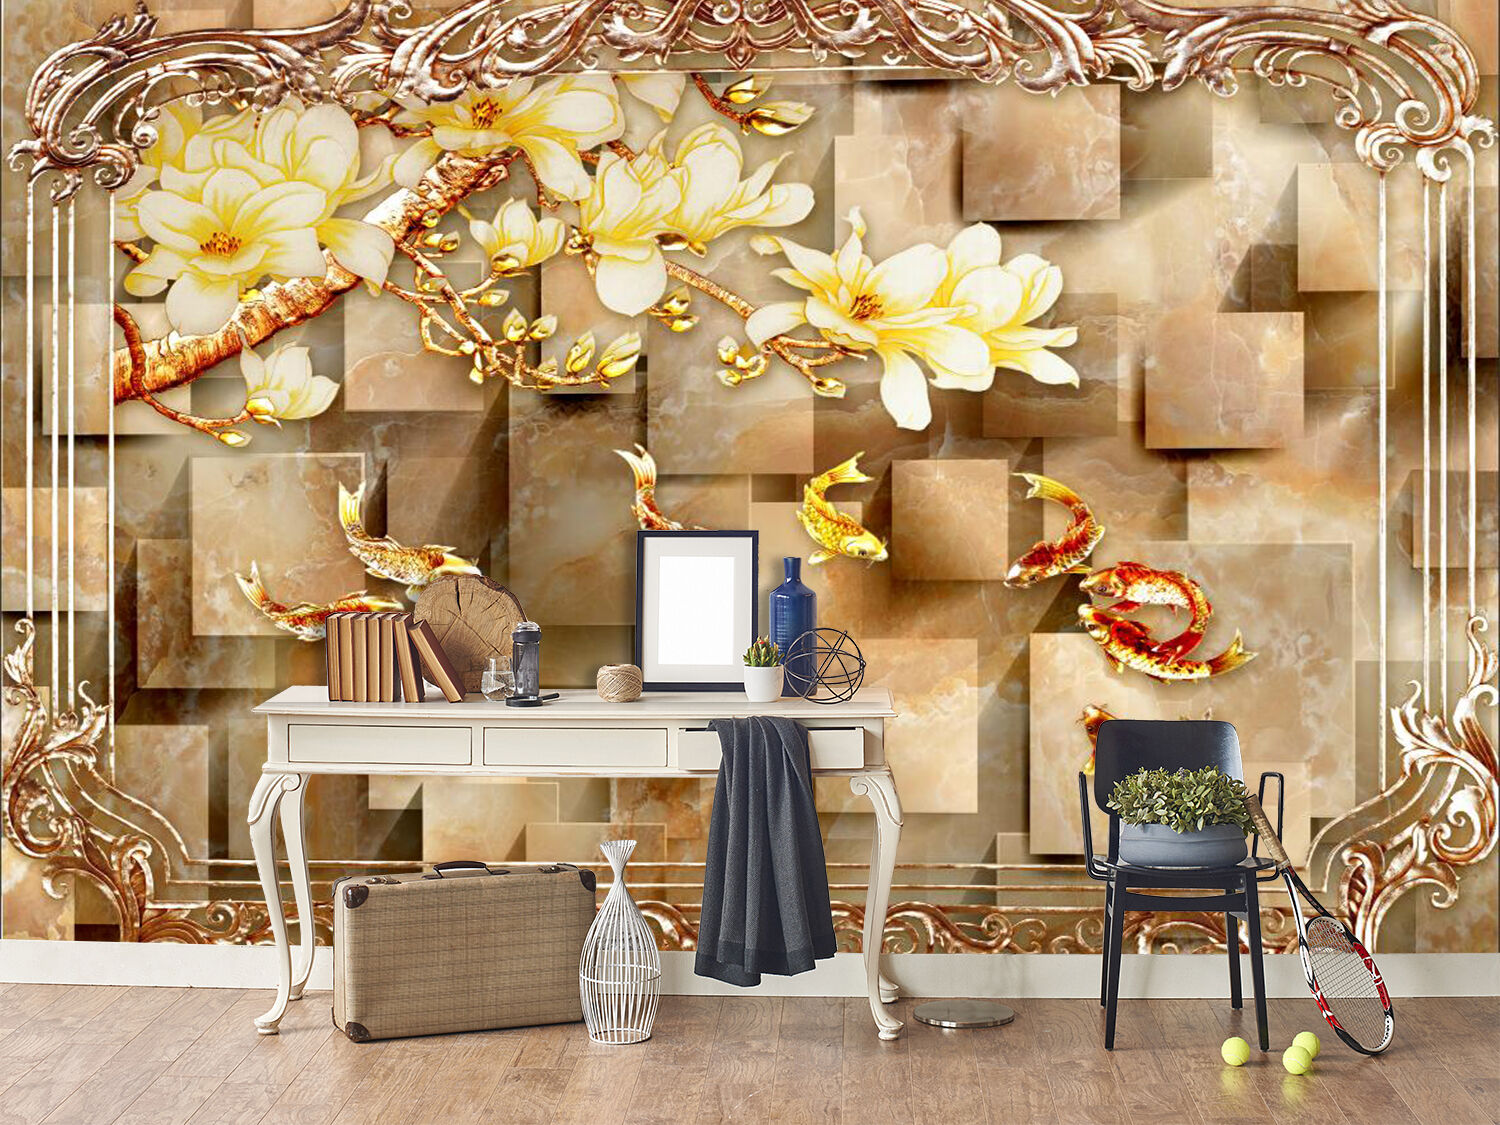 3D Marble Flowers Fishes 964 Paper Wall Print Wall Decal Wall Deco Indoor Murals